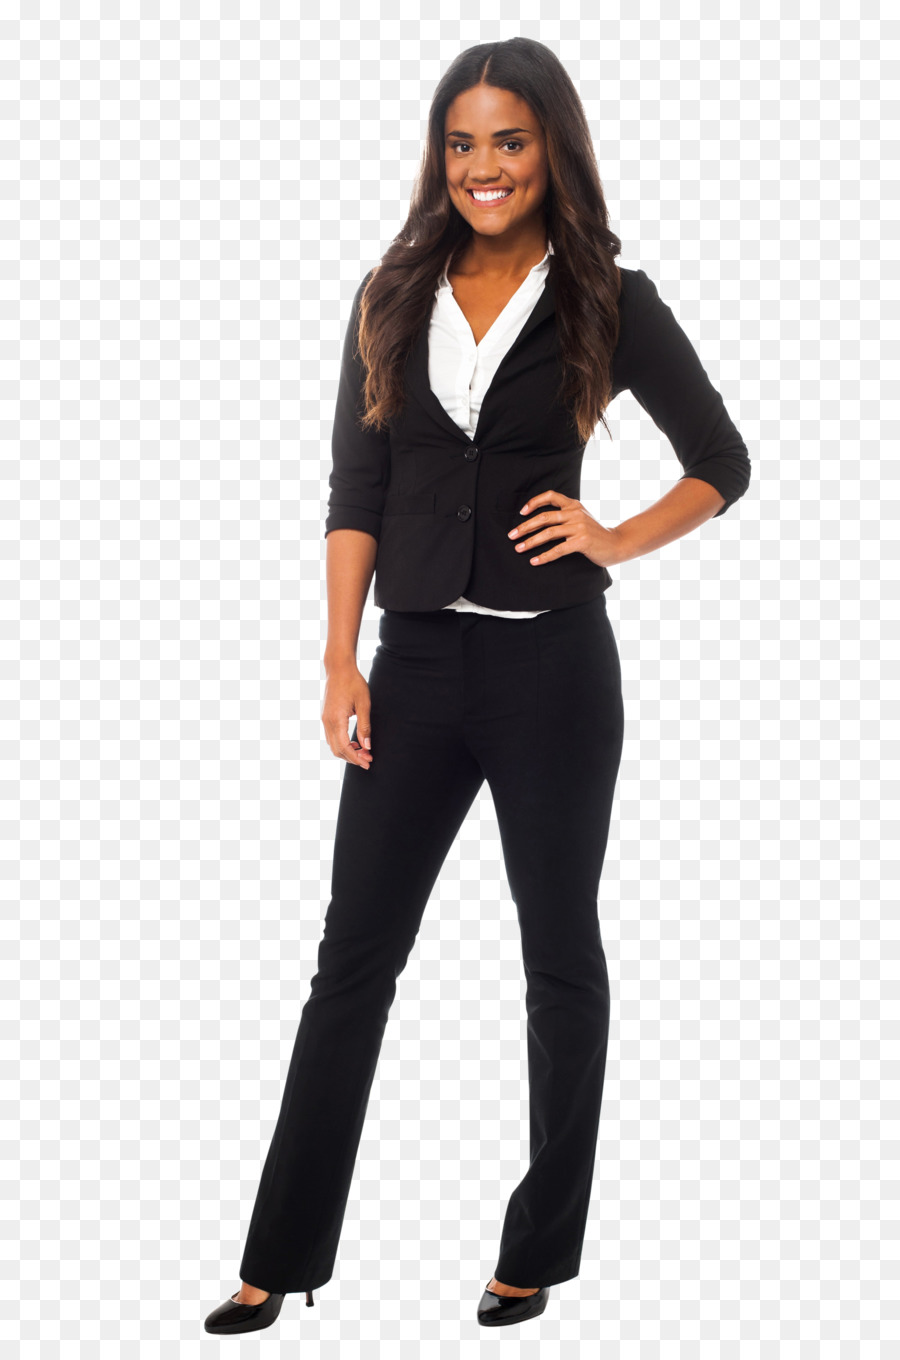 04681266a84 Business casual Dress Clothing Pant Suits - dress png download ...